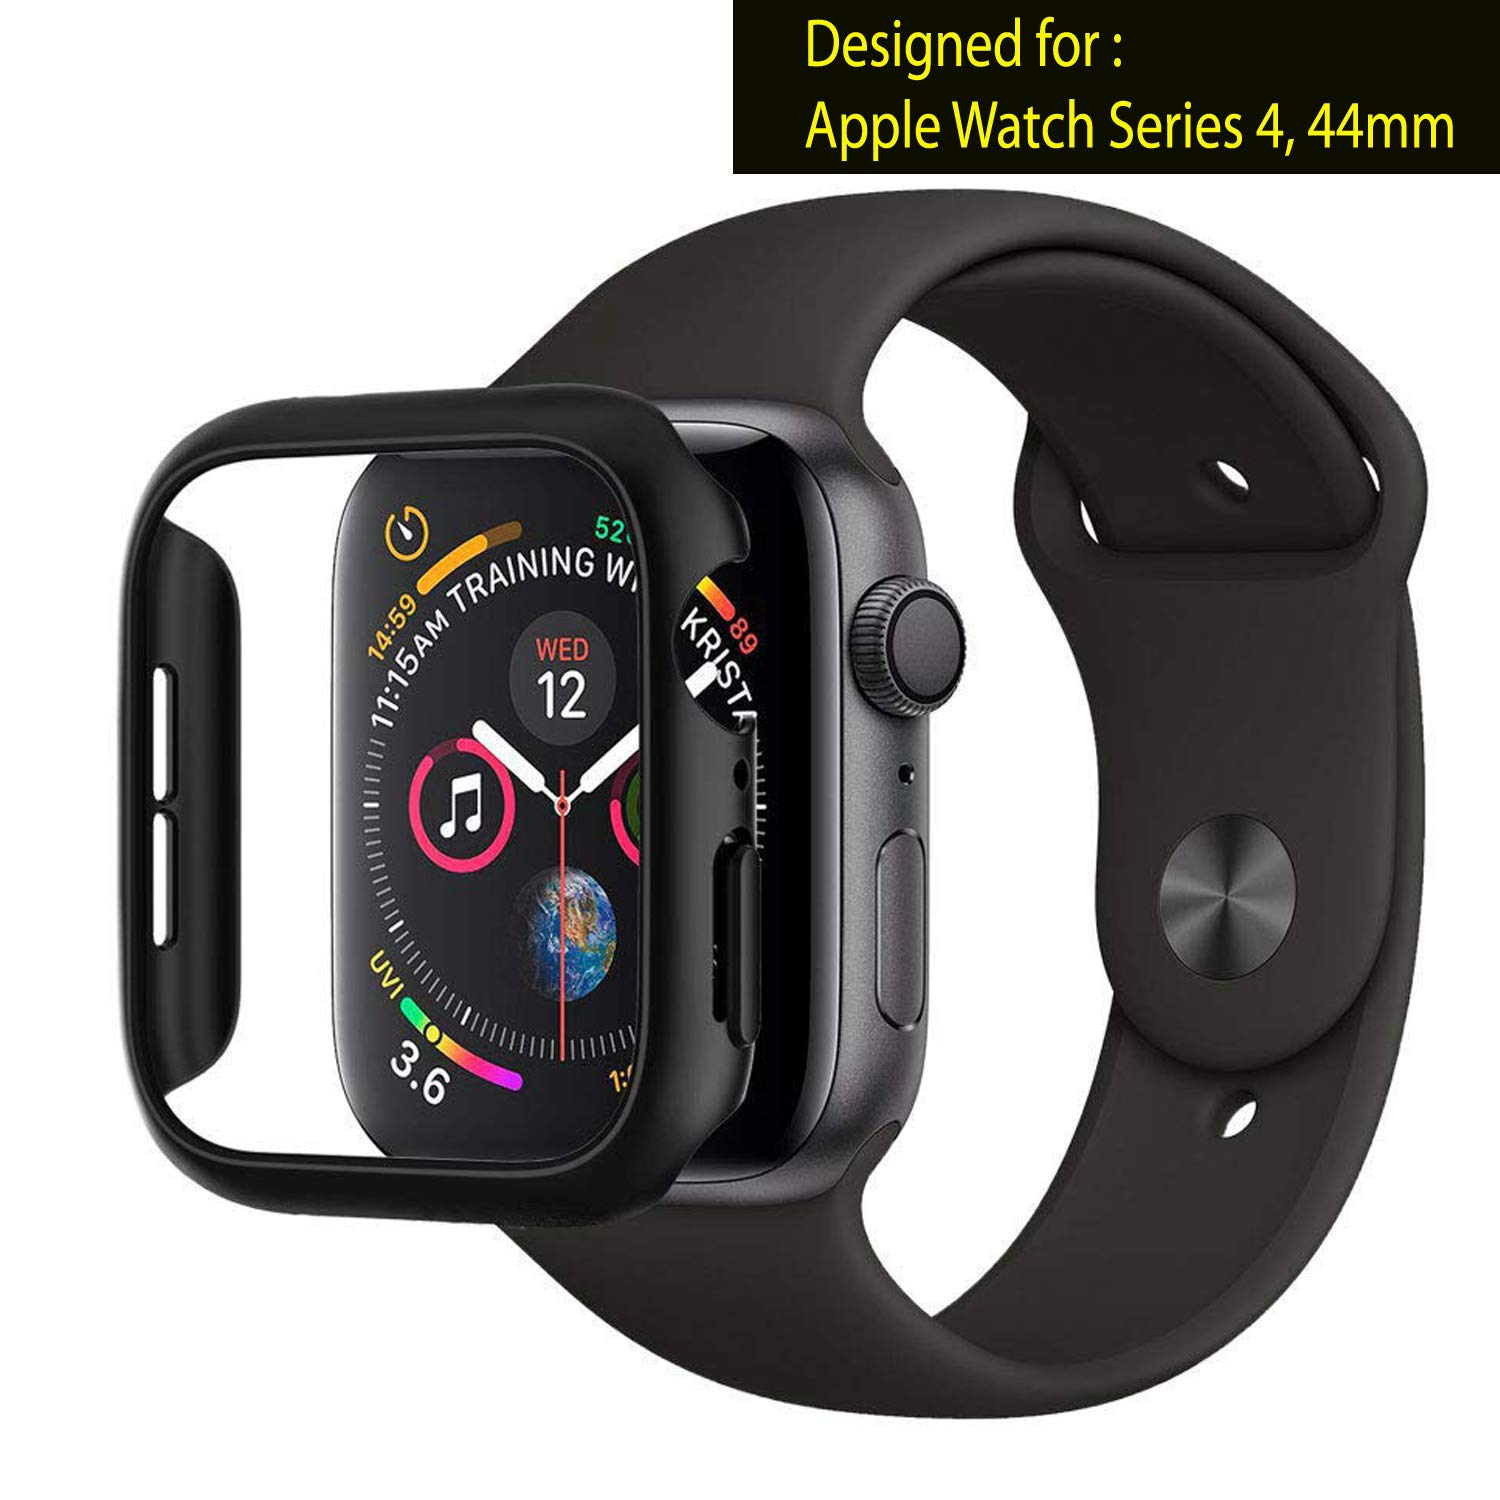 OJOS Thin Fit Designed Case Compatible with Apple Watch Case for 44mm Series 4 (2018) - Black (B07MHM5FVH) Amazon Price History, Amazon Price Tracker